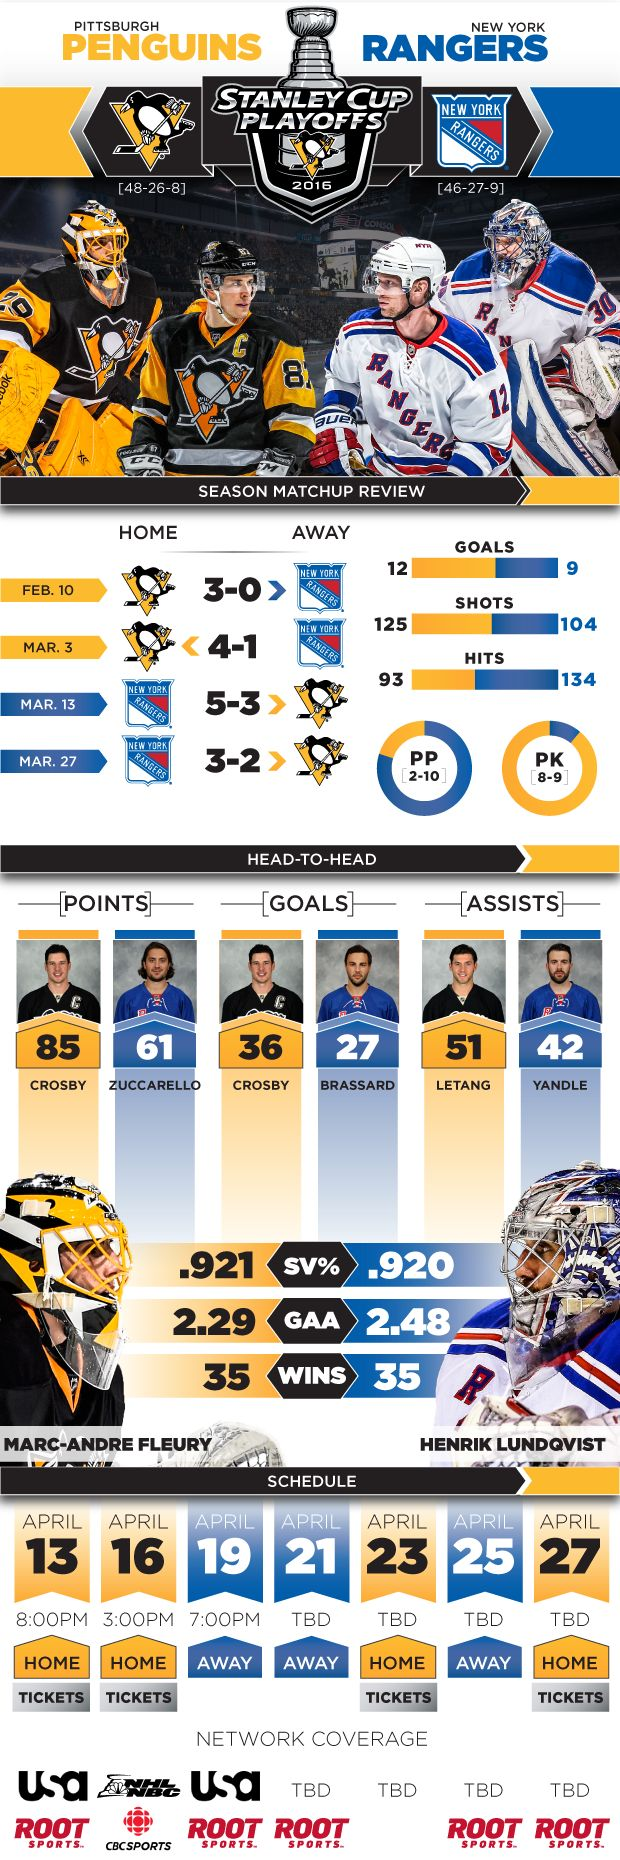 Here's everything you need to know about the Penguins and Rangers Round 1 series in the 2016 Stanley Cup Playoffs.